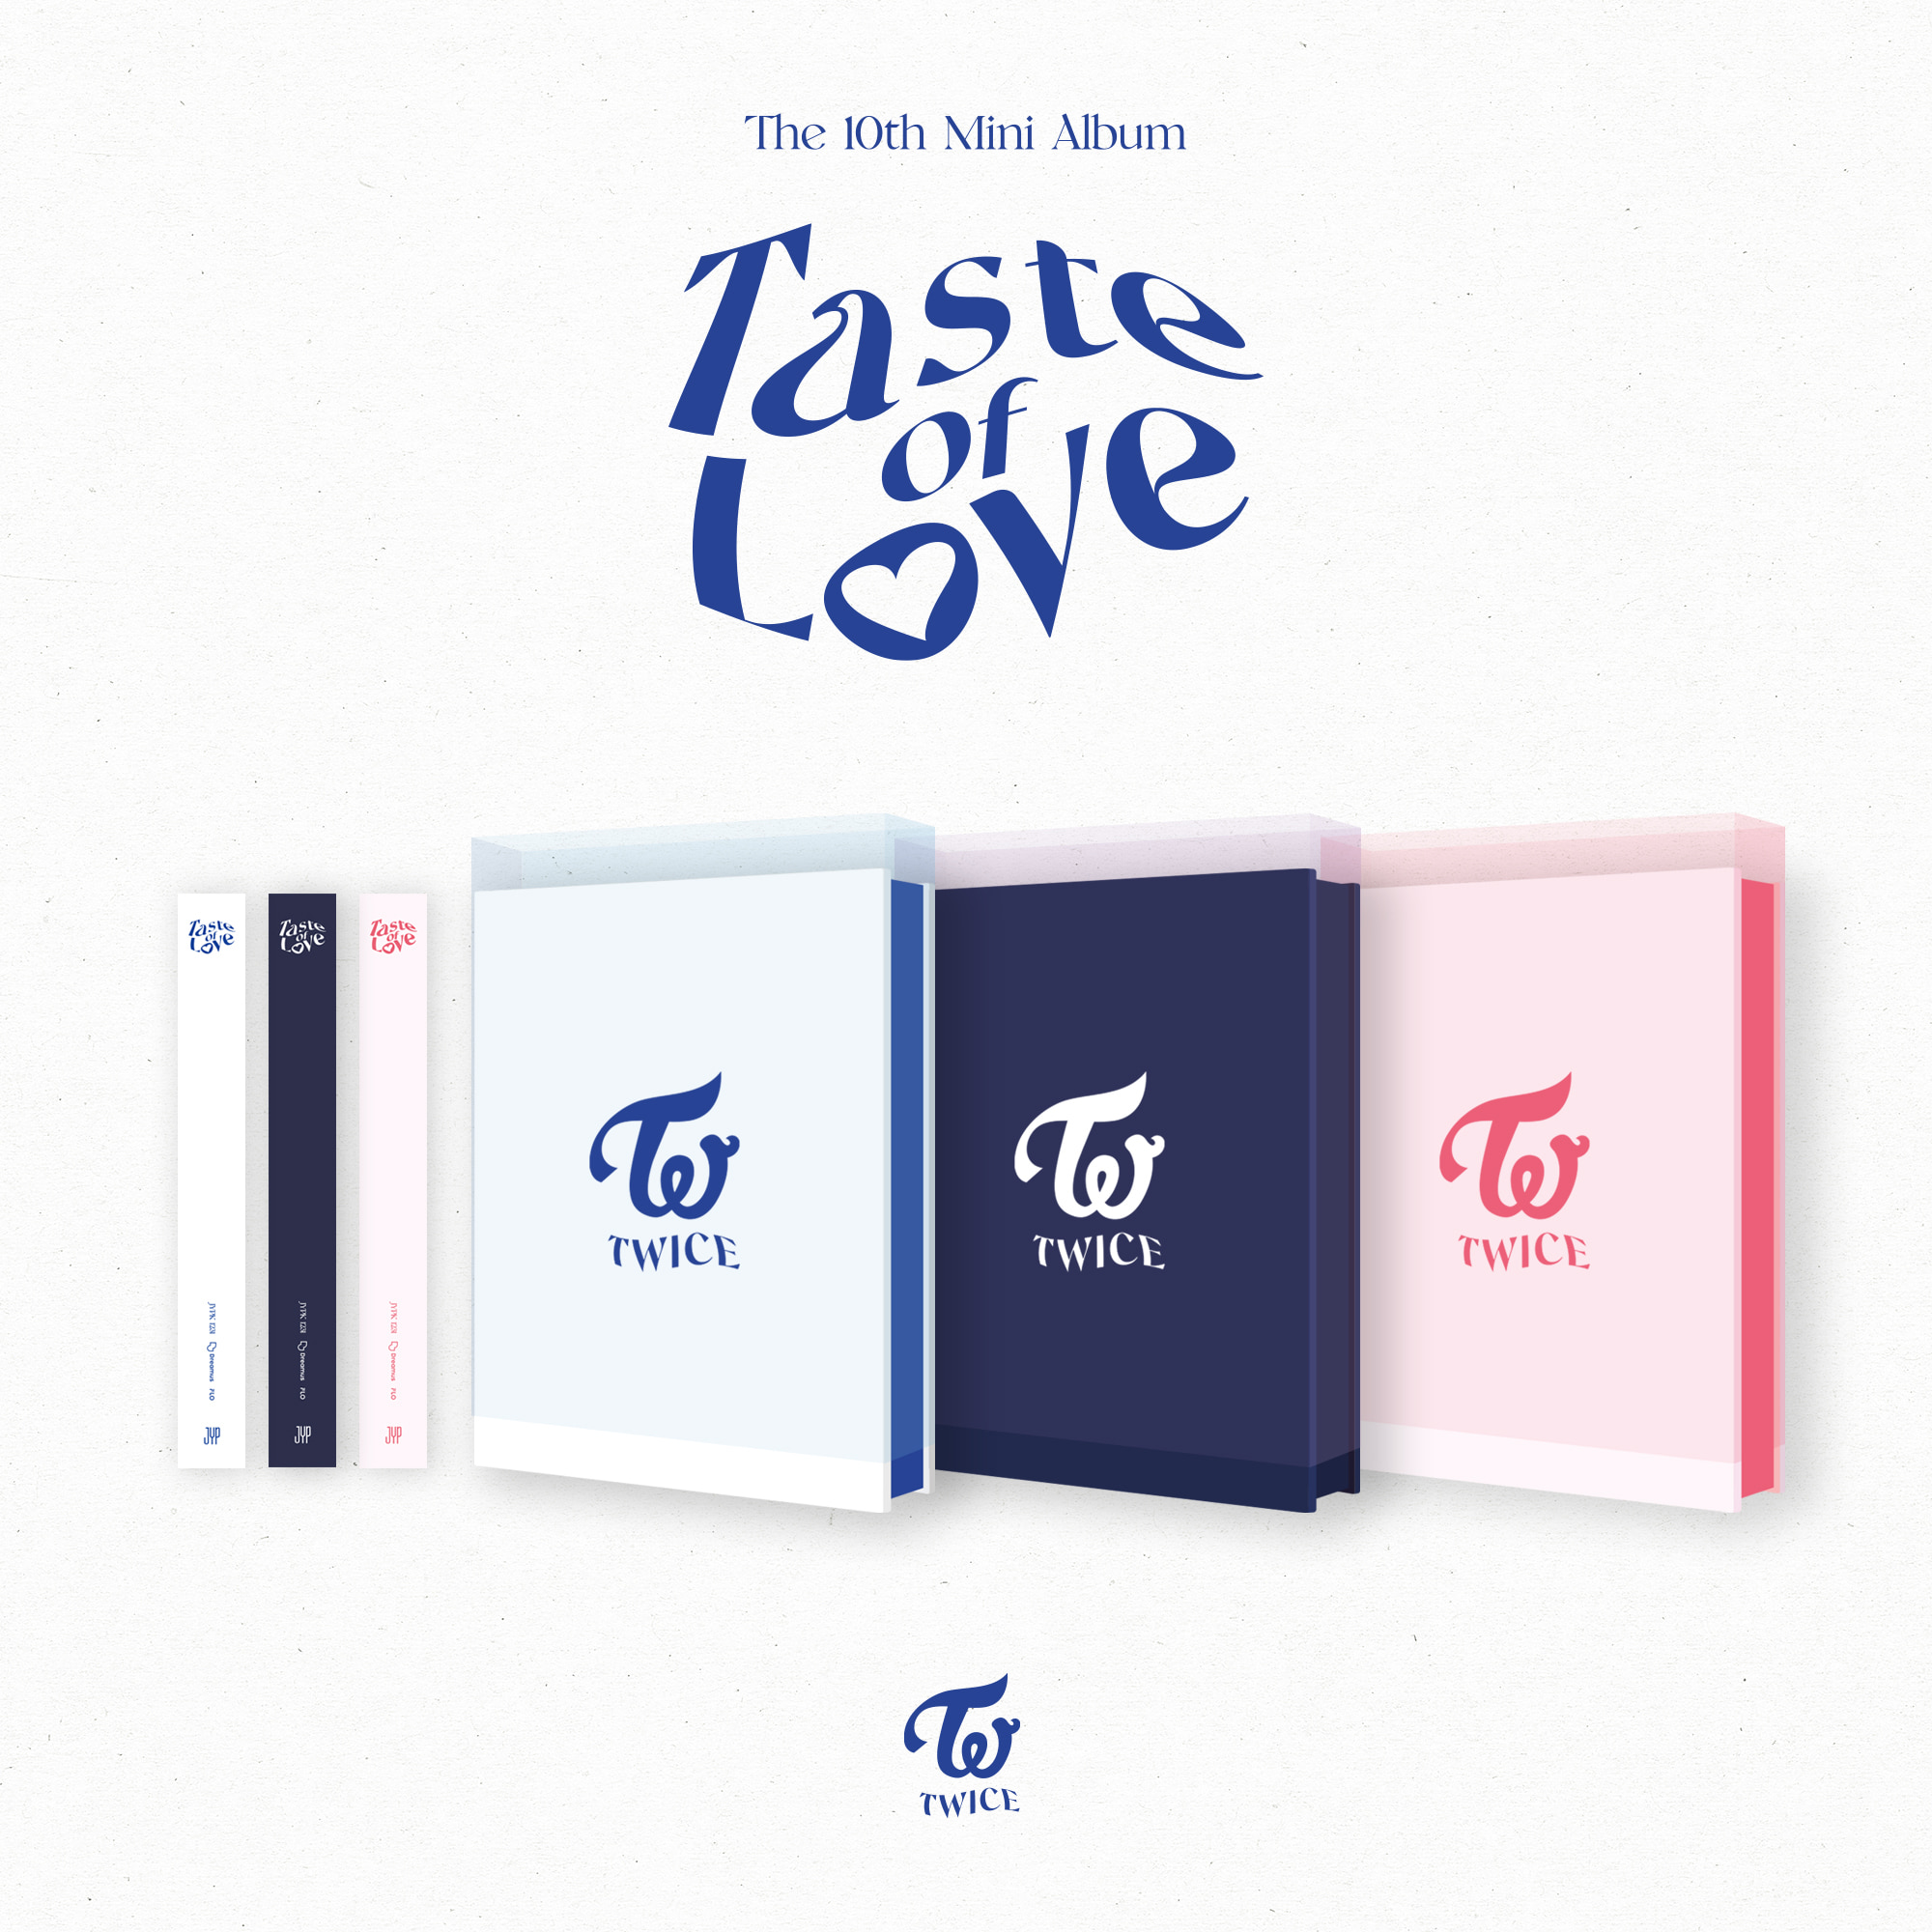 트와이스(TWICE) - 10th Mini Album [Taste of Love] (Random ver.)케이팝스토어(kpop store)